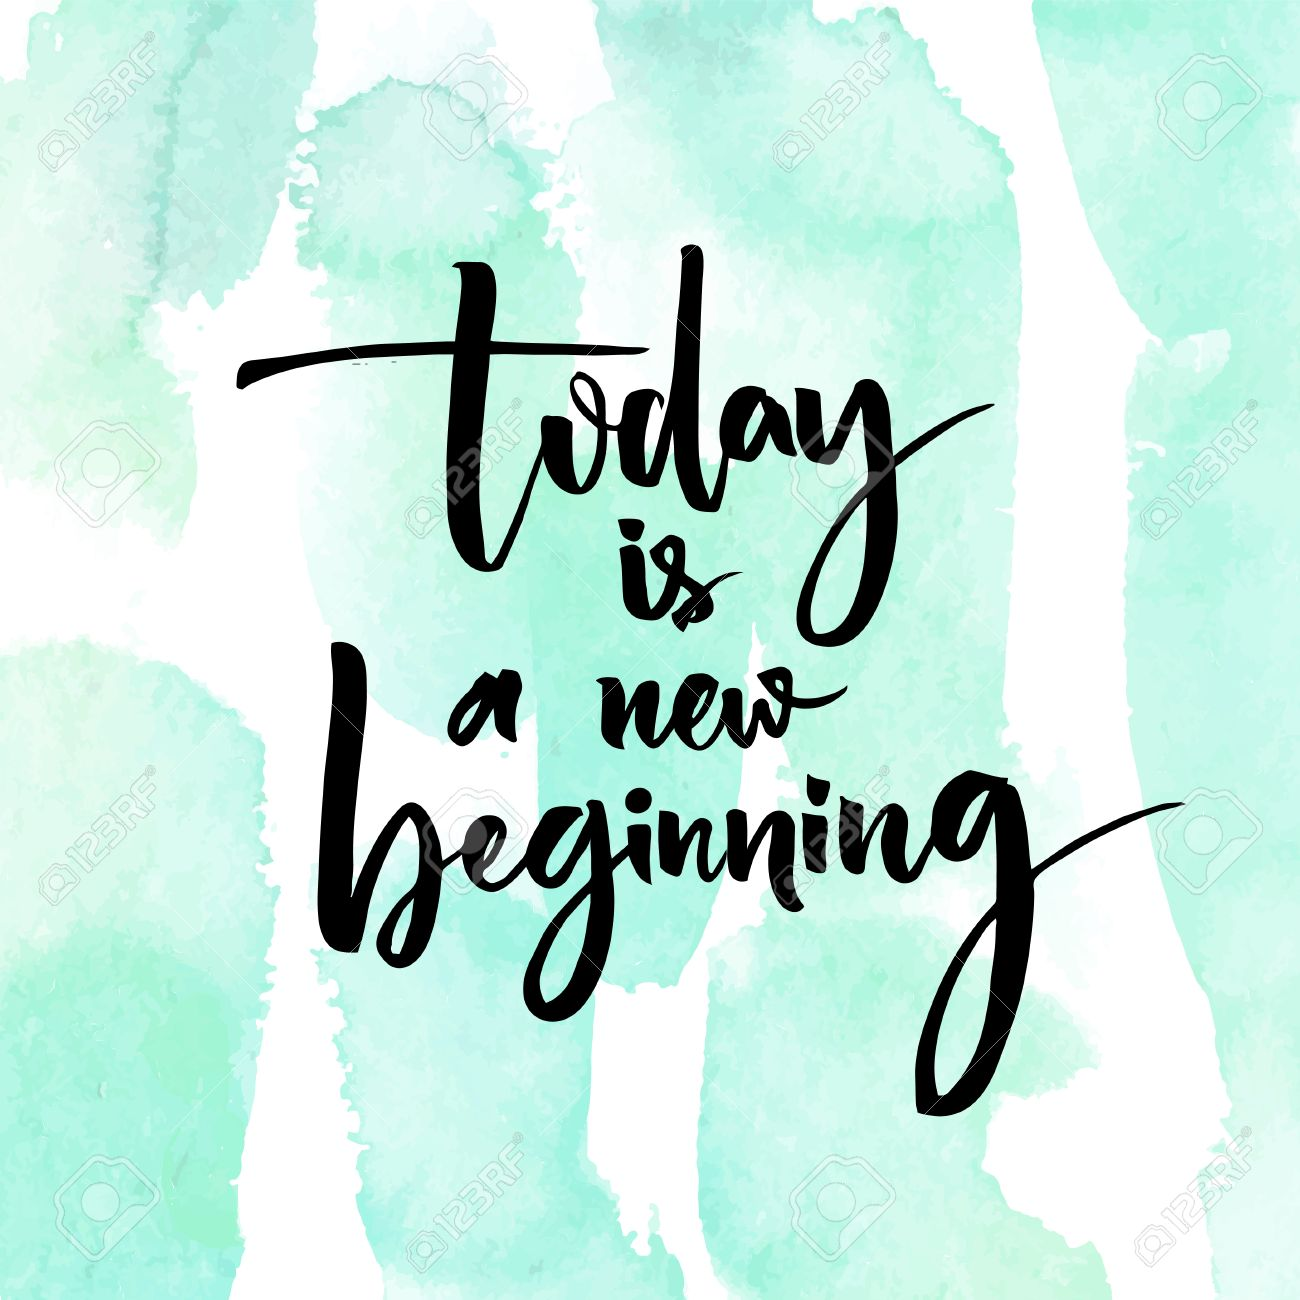 Today Is A New Beginning Inspirational Quote At Turquoise